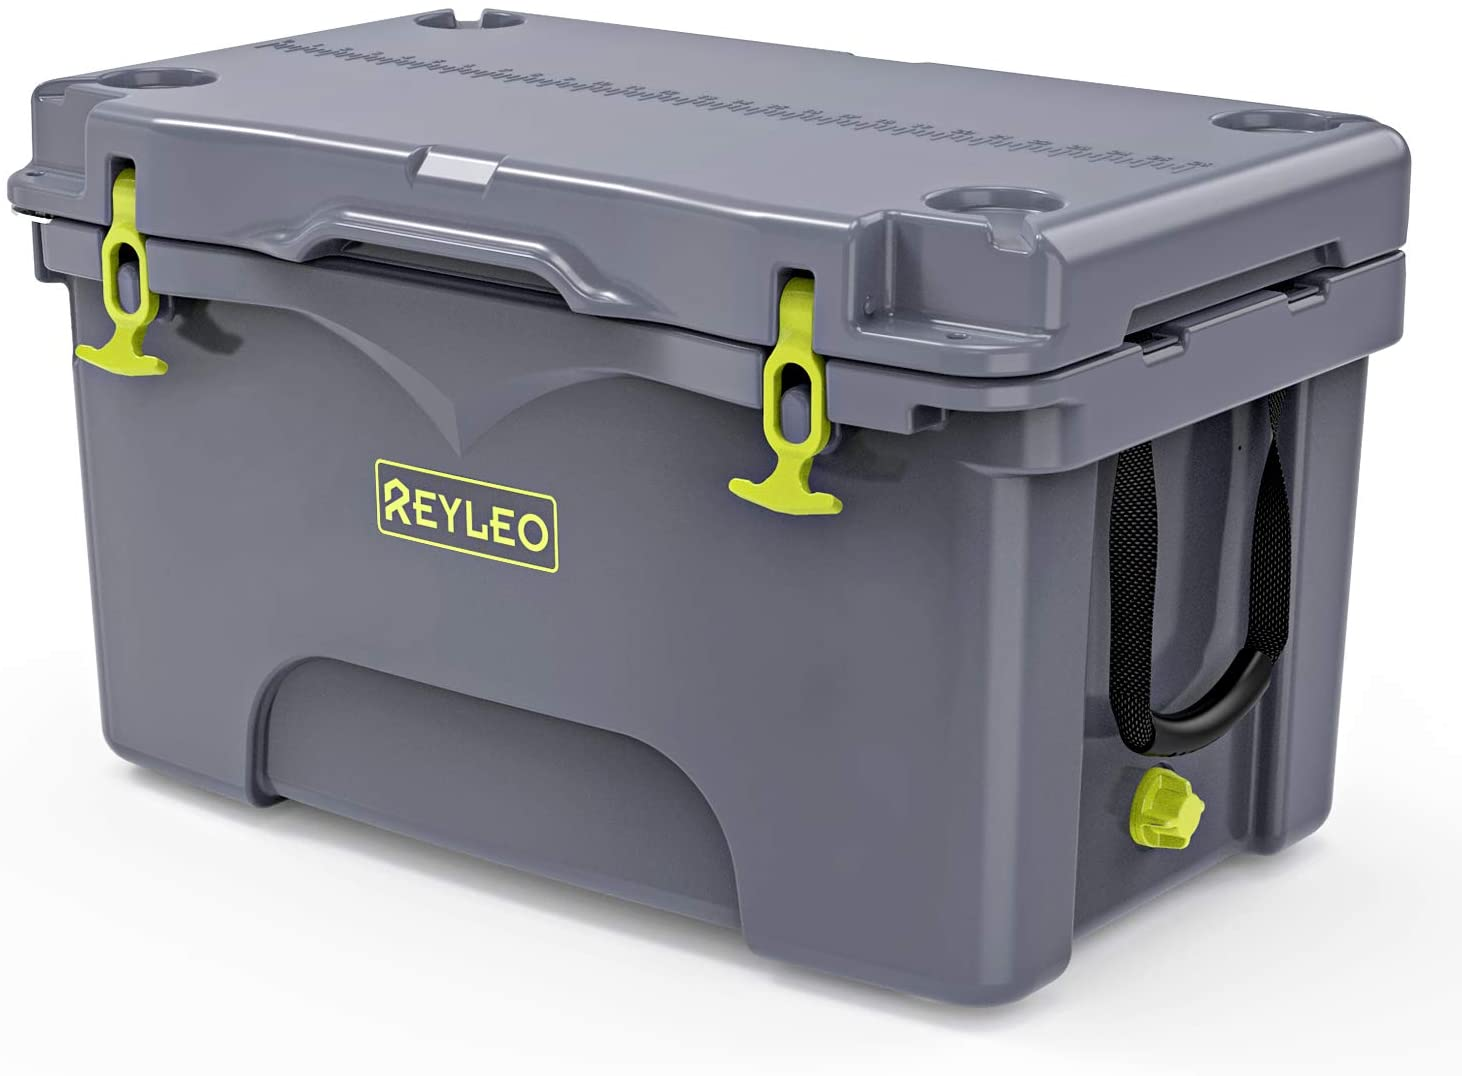 A REYLEO cooler on a white background.